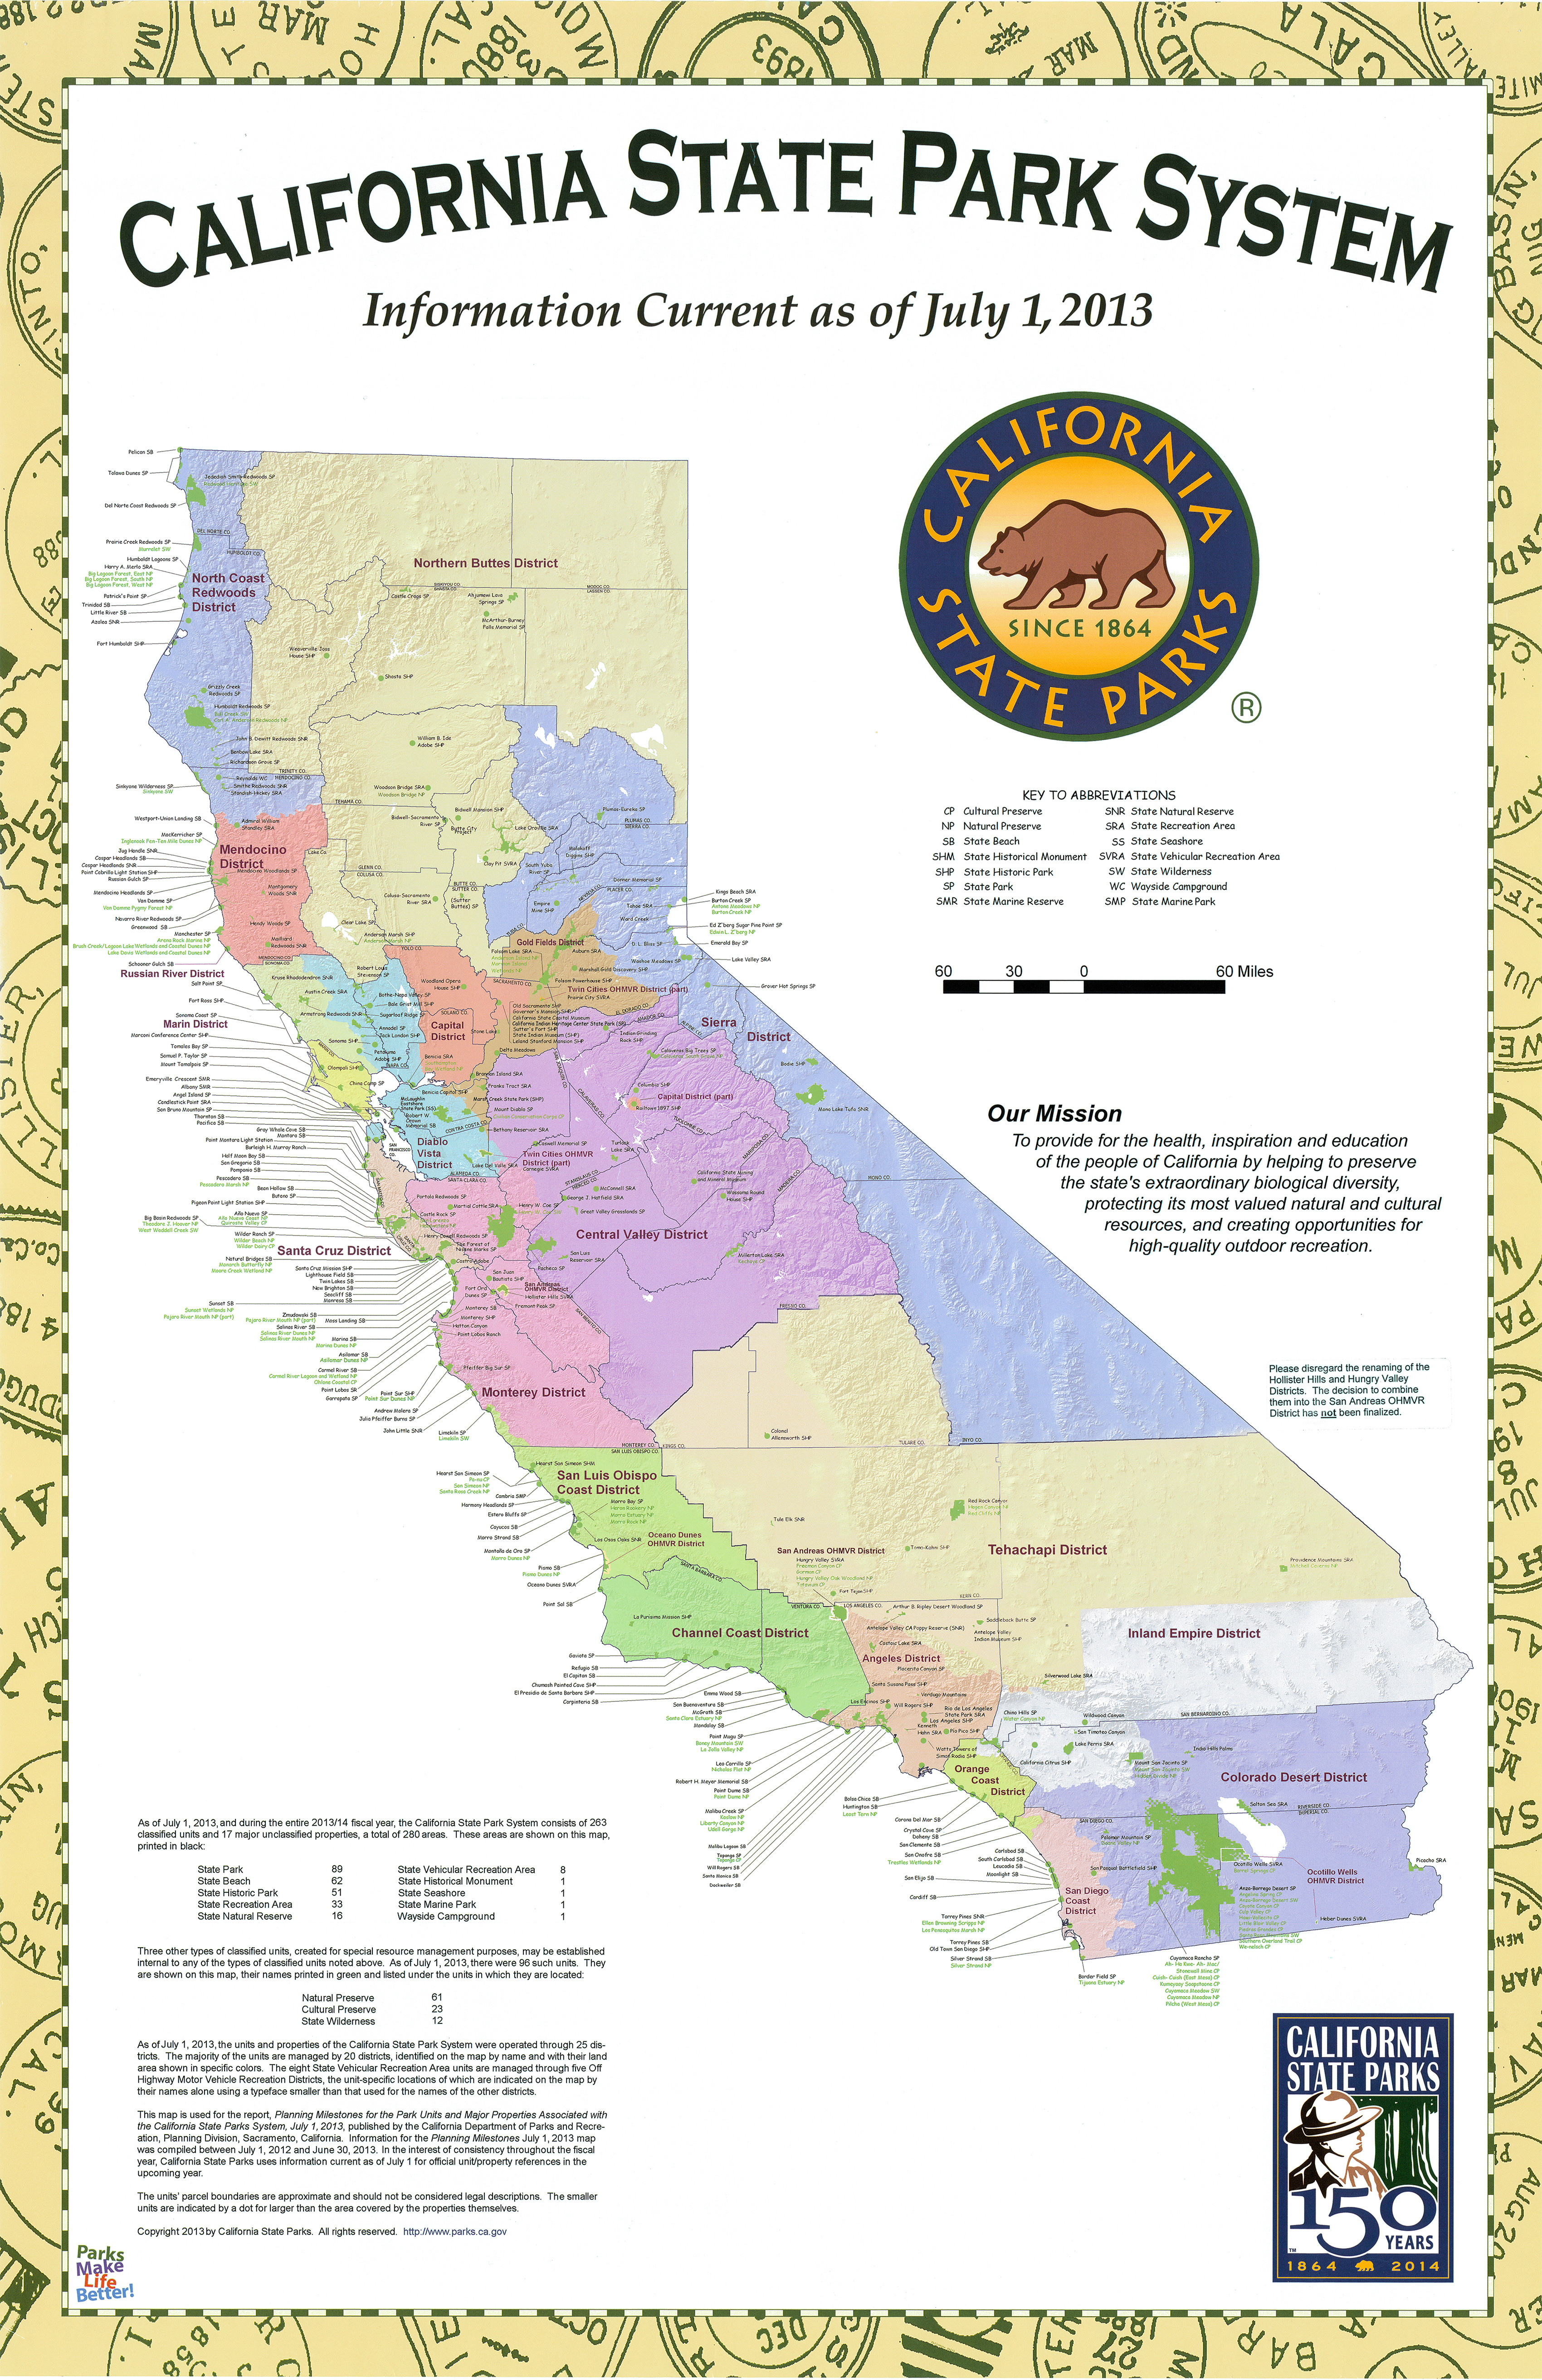 California State Campgrounds Map Printable Maps Map California Map - California State Campgrounds Map